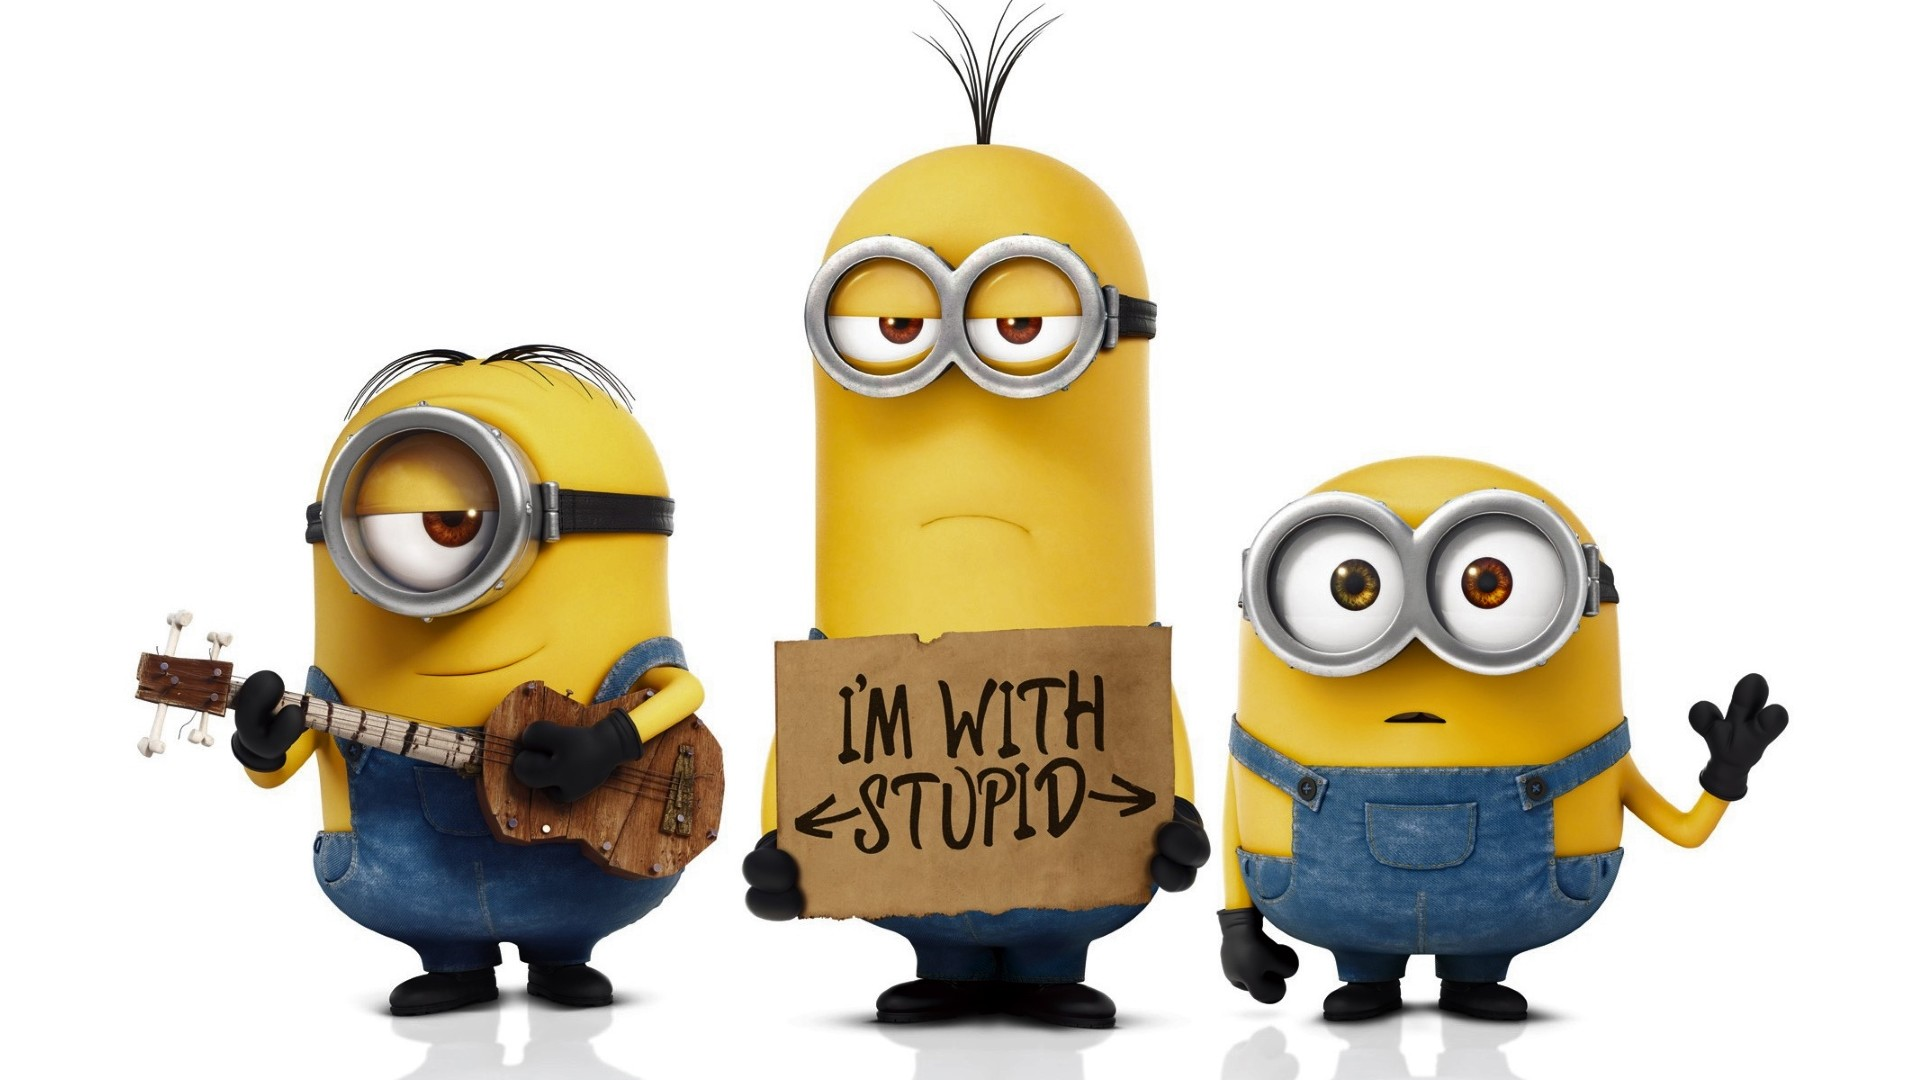 1920x1080 3 funny Minions desktop background: